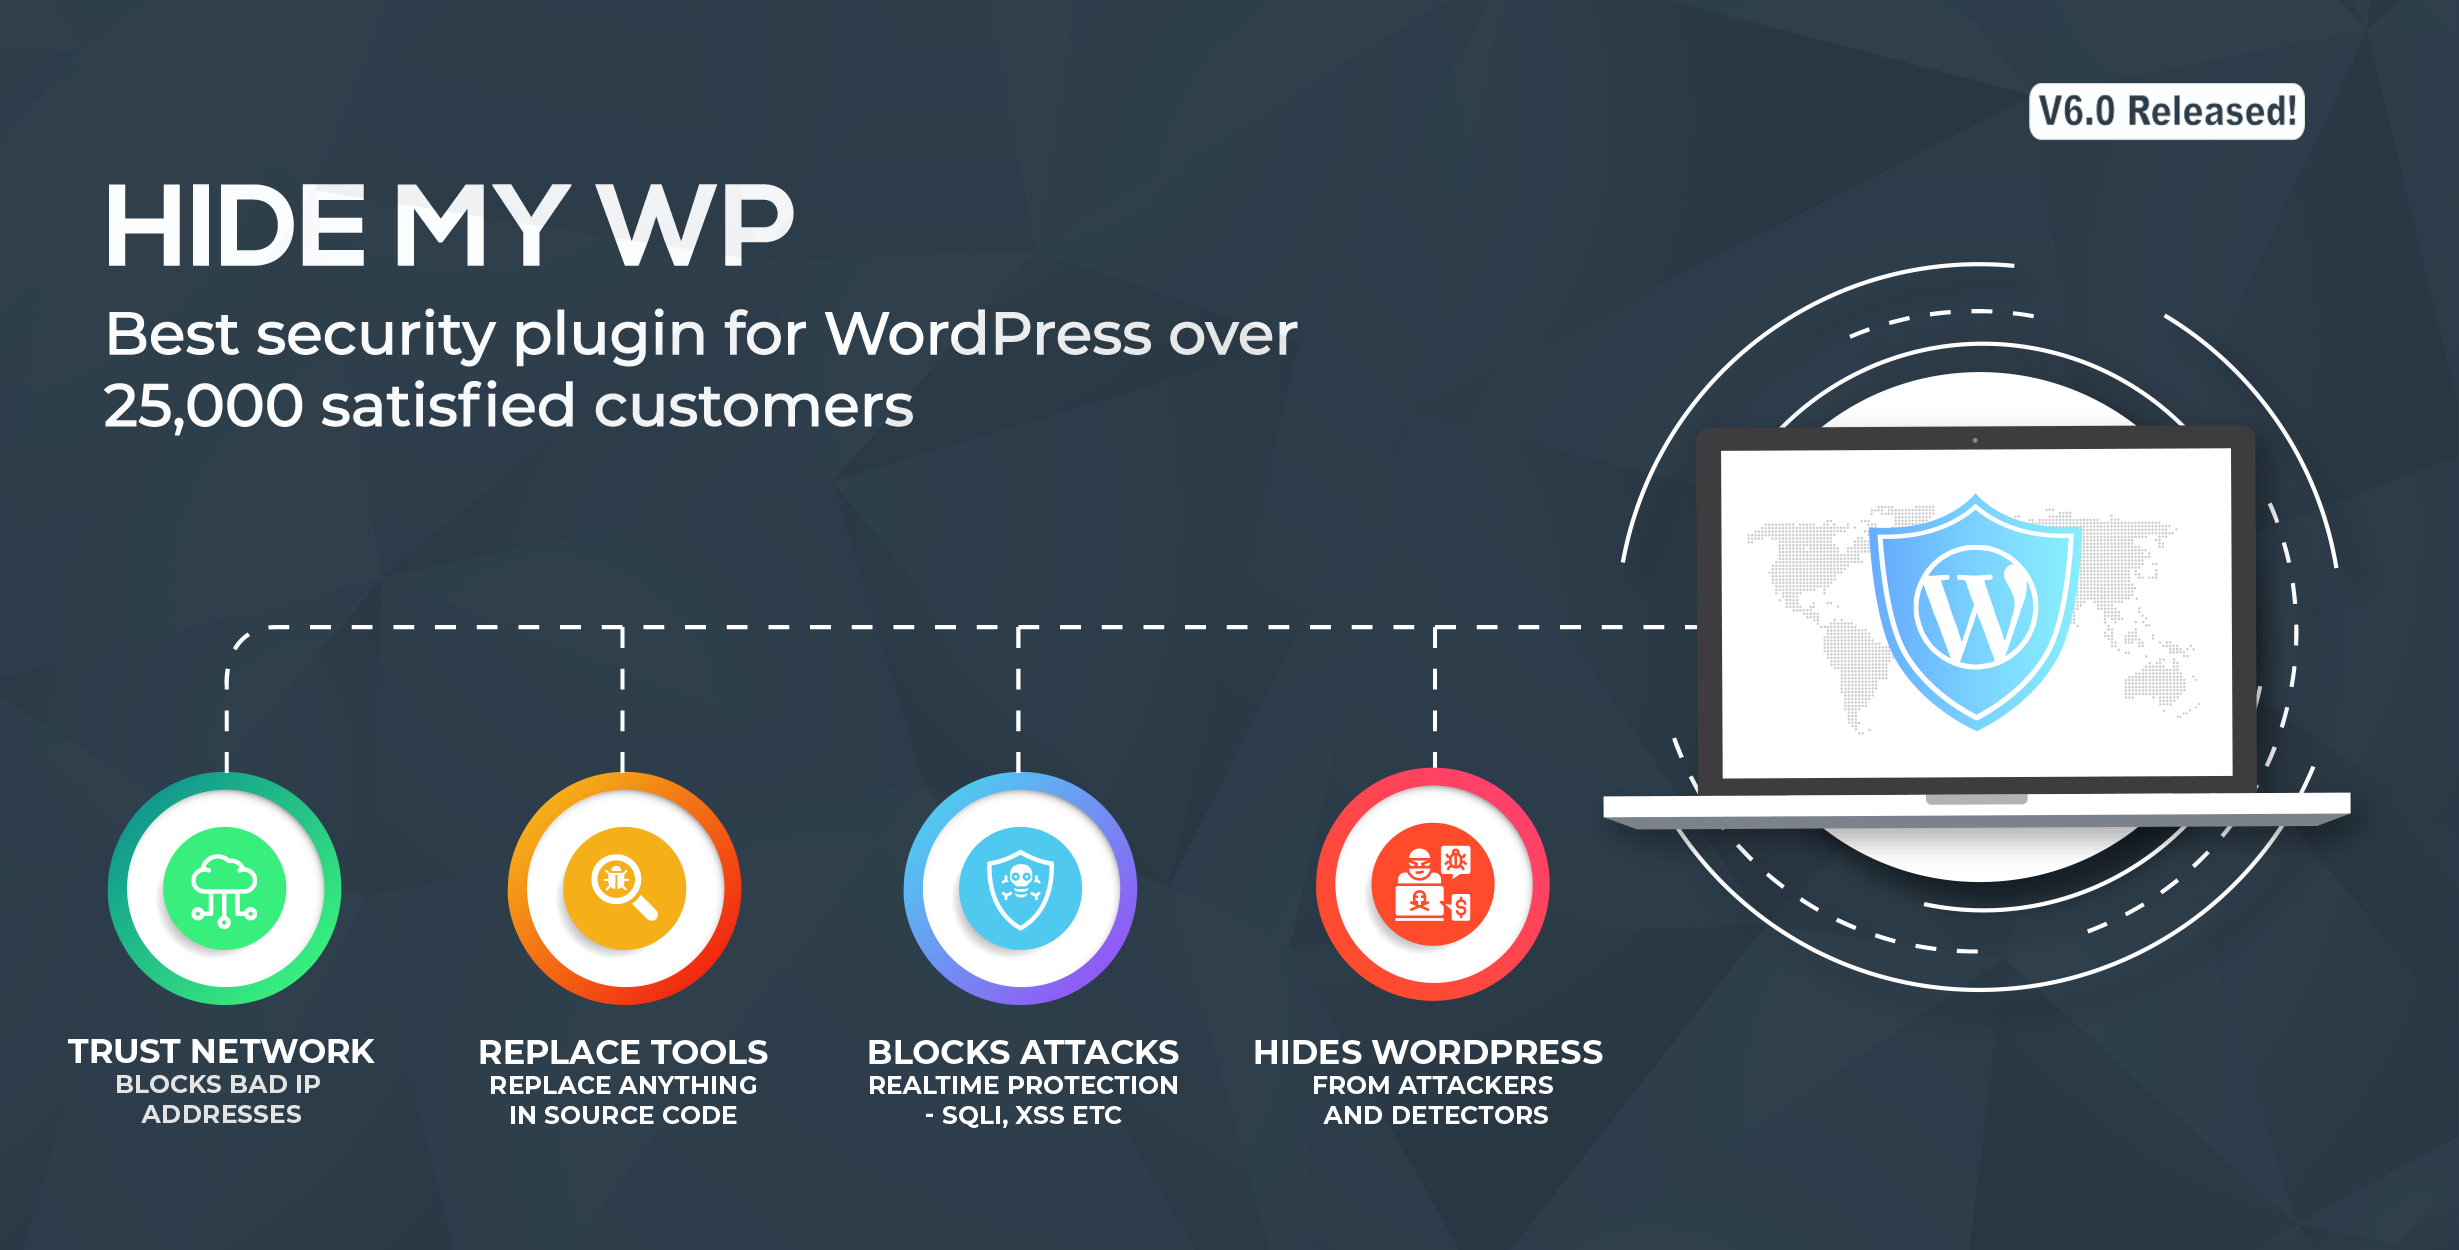 How to Stop Non-Stop Login Attempts on a WordPress Site